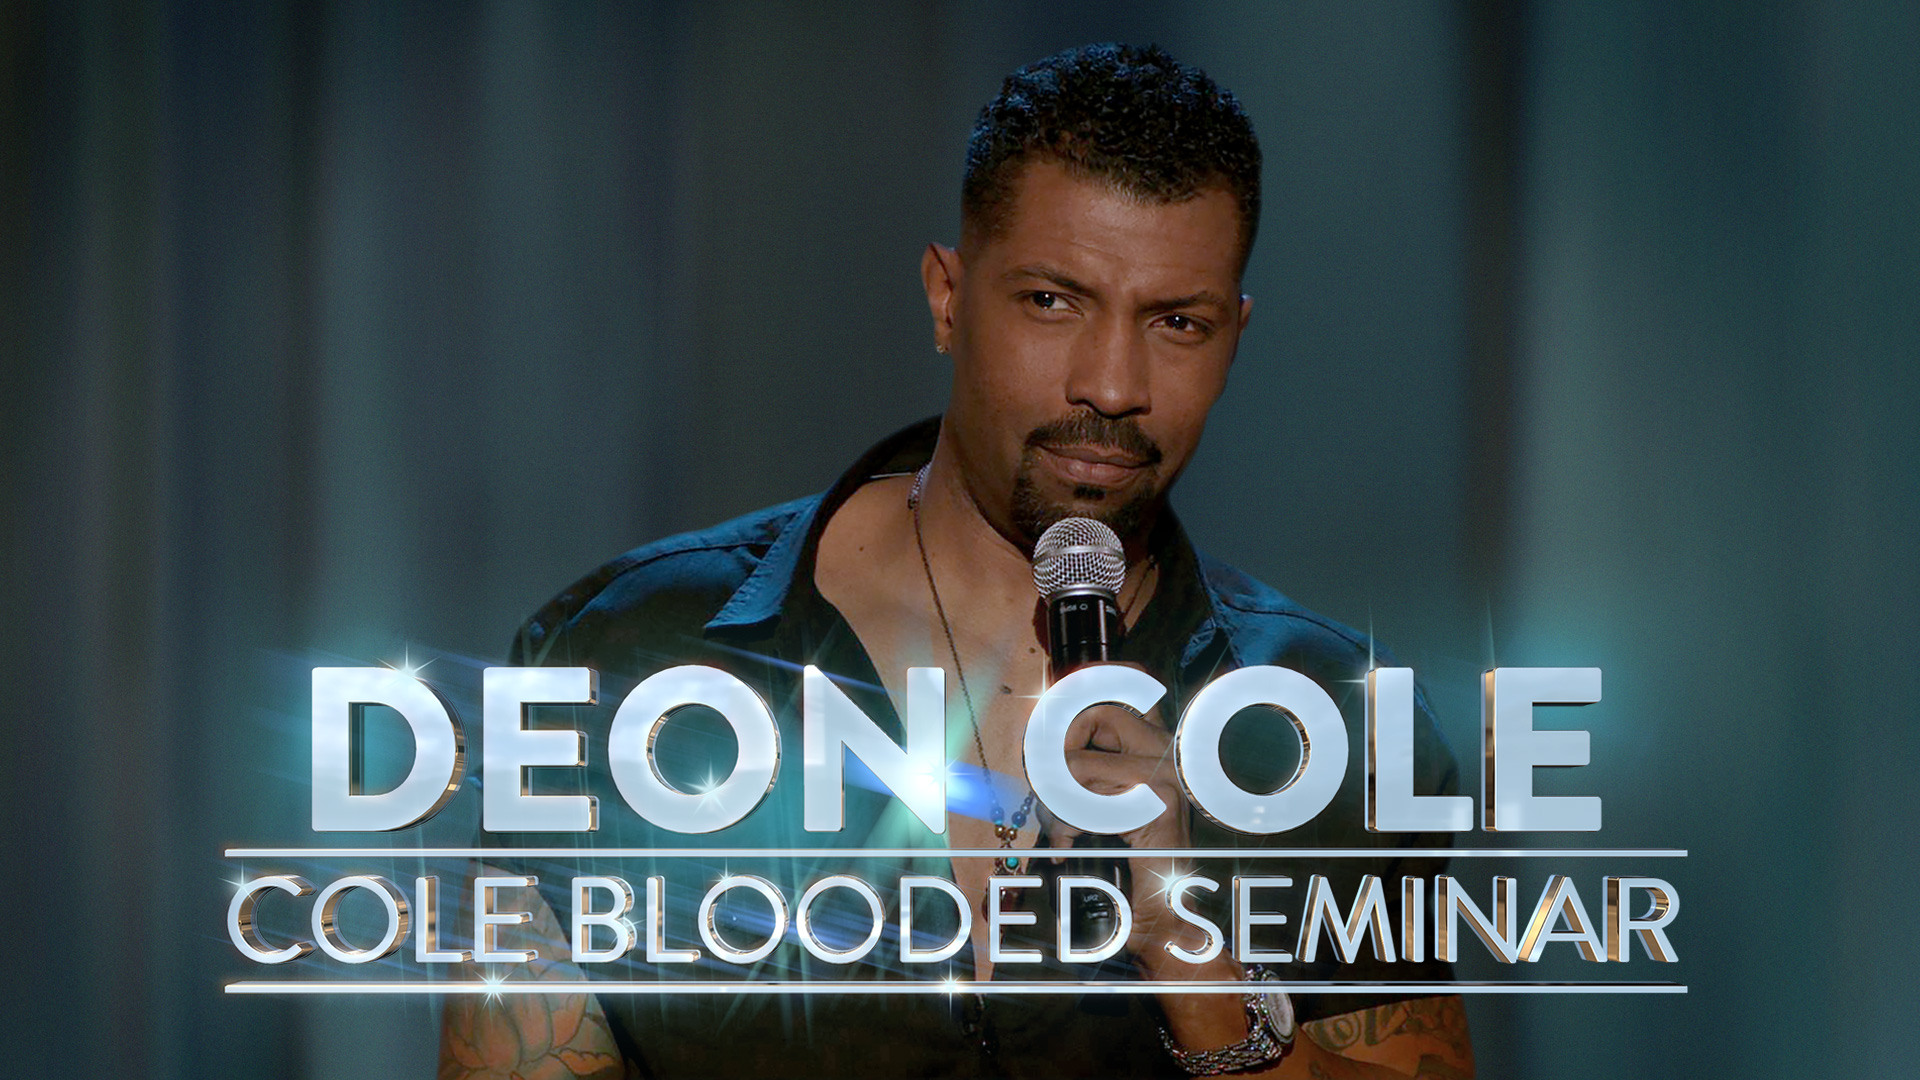 Deon Cole - Cole Blooded Seminar